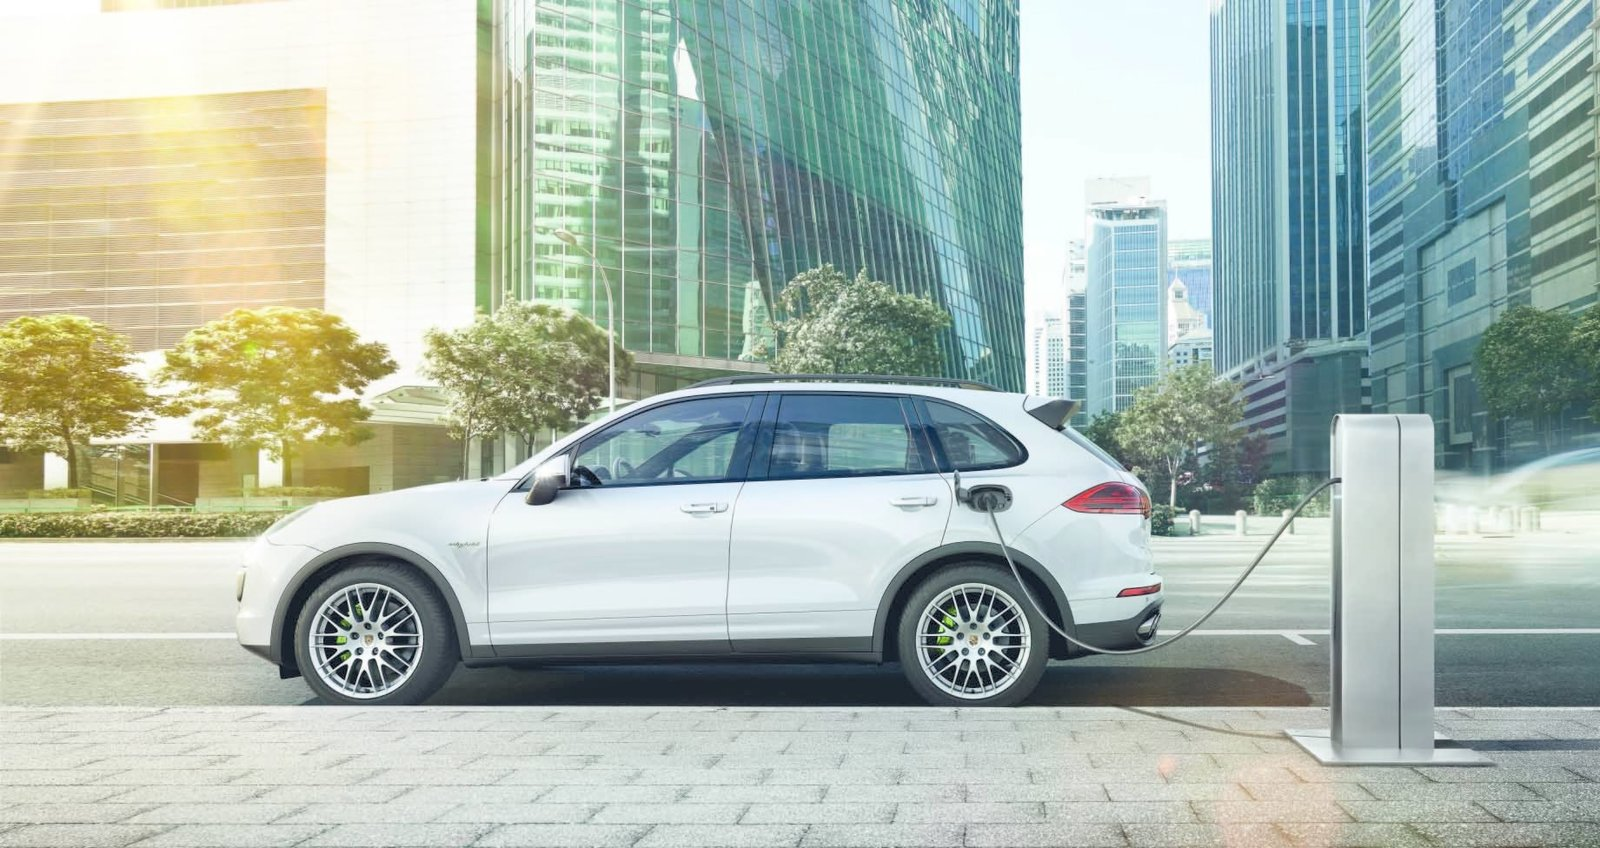 Photo 1 of 8 in New Porsche Cayenne Editions Promise Greater Efficiency Without Compromising Performance